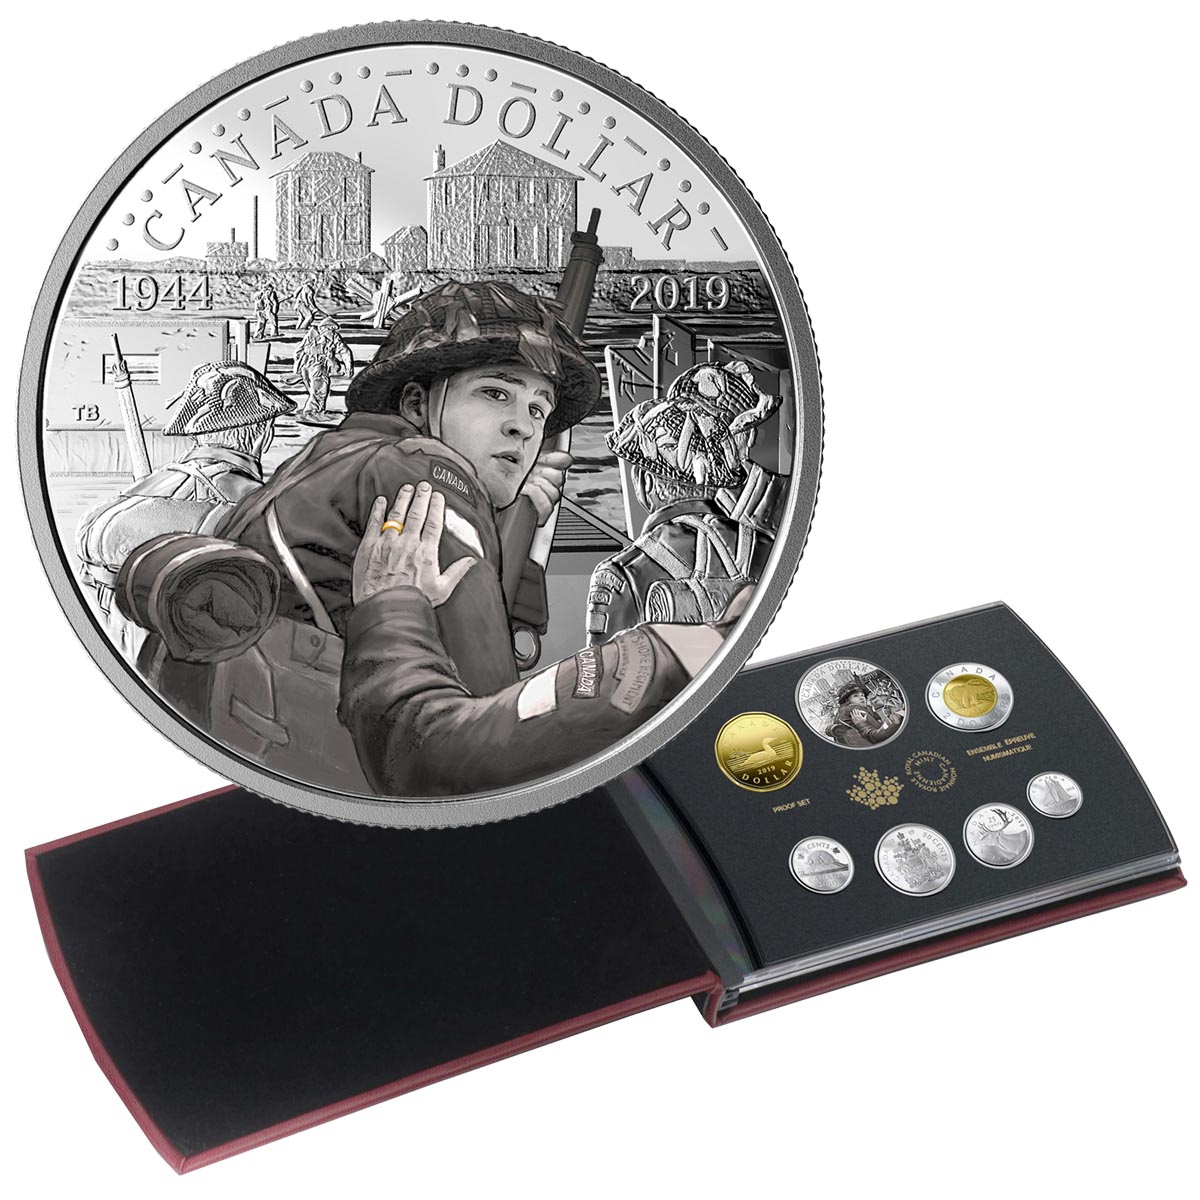 75TH ANNIVERSARY OF D-DAY ROYAL CANADIAN MINT 2019 PROOF SILVER DOLLAR